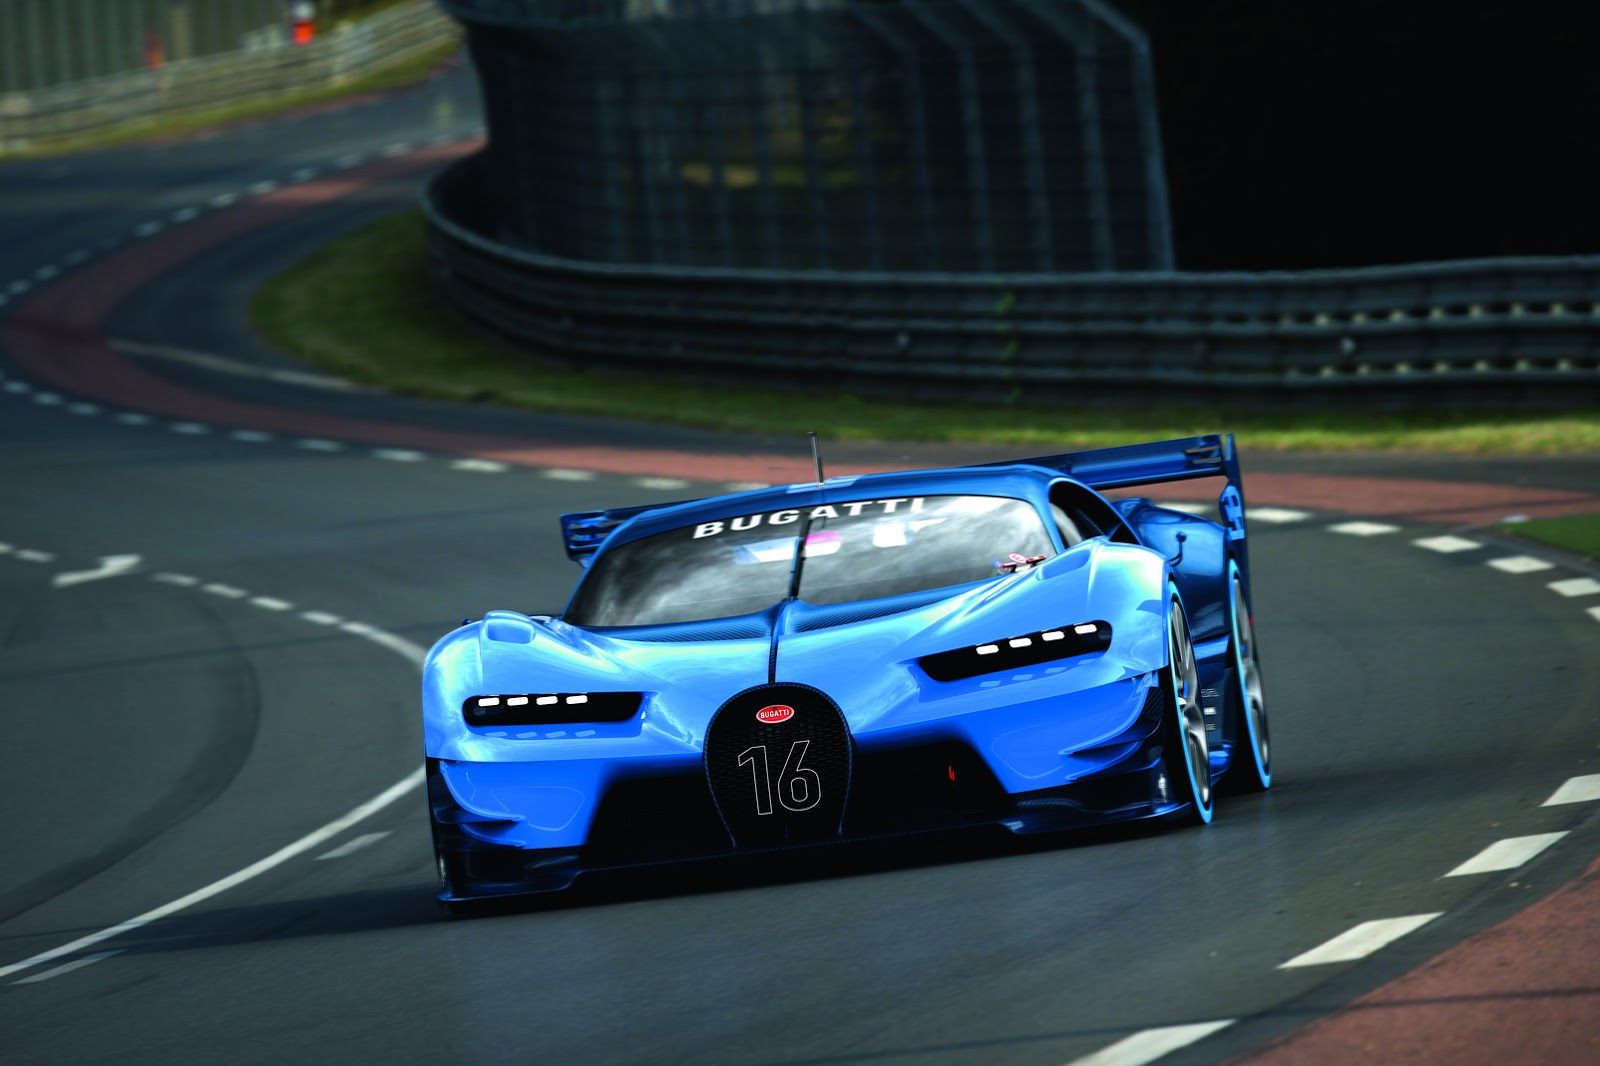 Limited-Edition Bugatti Model Unveiled at Closed-Door Event ... on mitsubishi gt vision, bmw gt vision, subaru viziv gt vision, renault alpine gt vision,